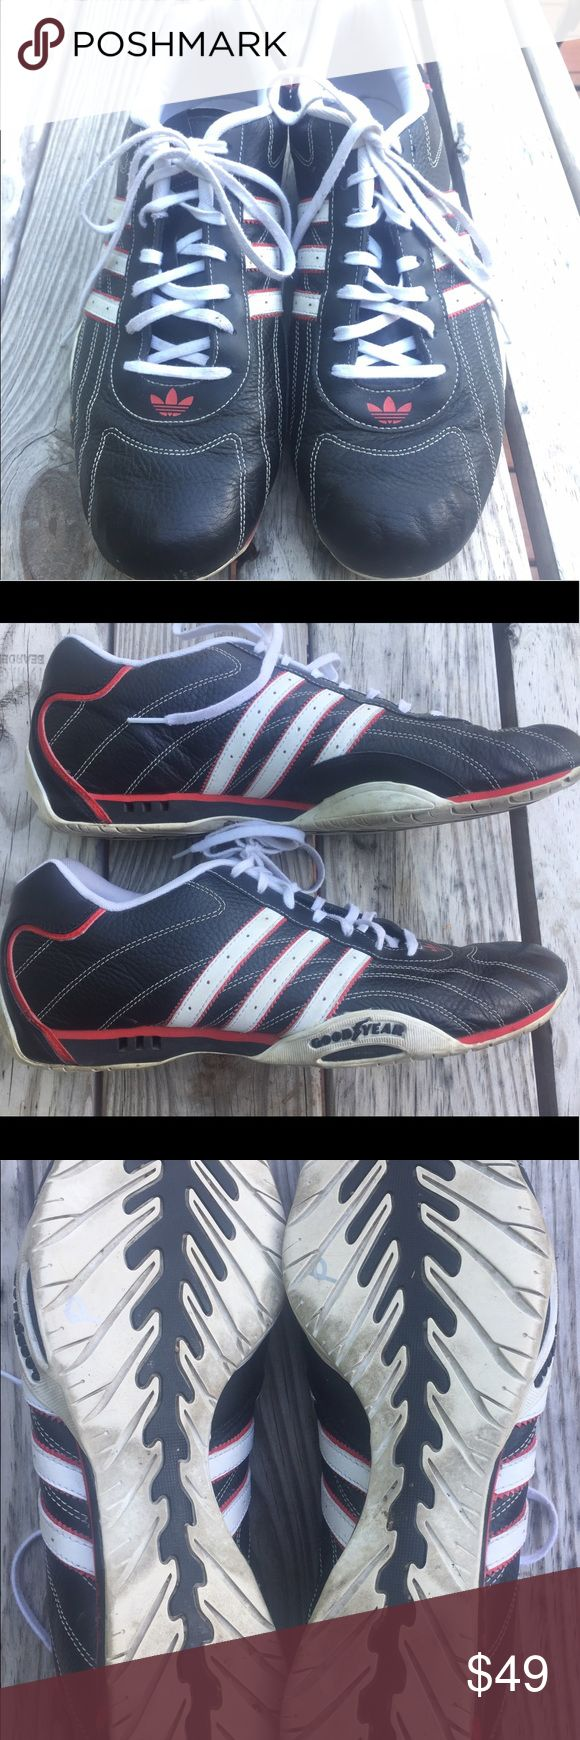 Team Adidas Goodyear Adi racing shoes Men's size 13 Team Adidas Goodyear Audi racer driving shoes. Black, red, and white leather upper. Minor wear. Great condition. adidas Shoes Sneakers